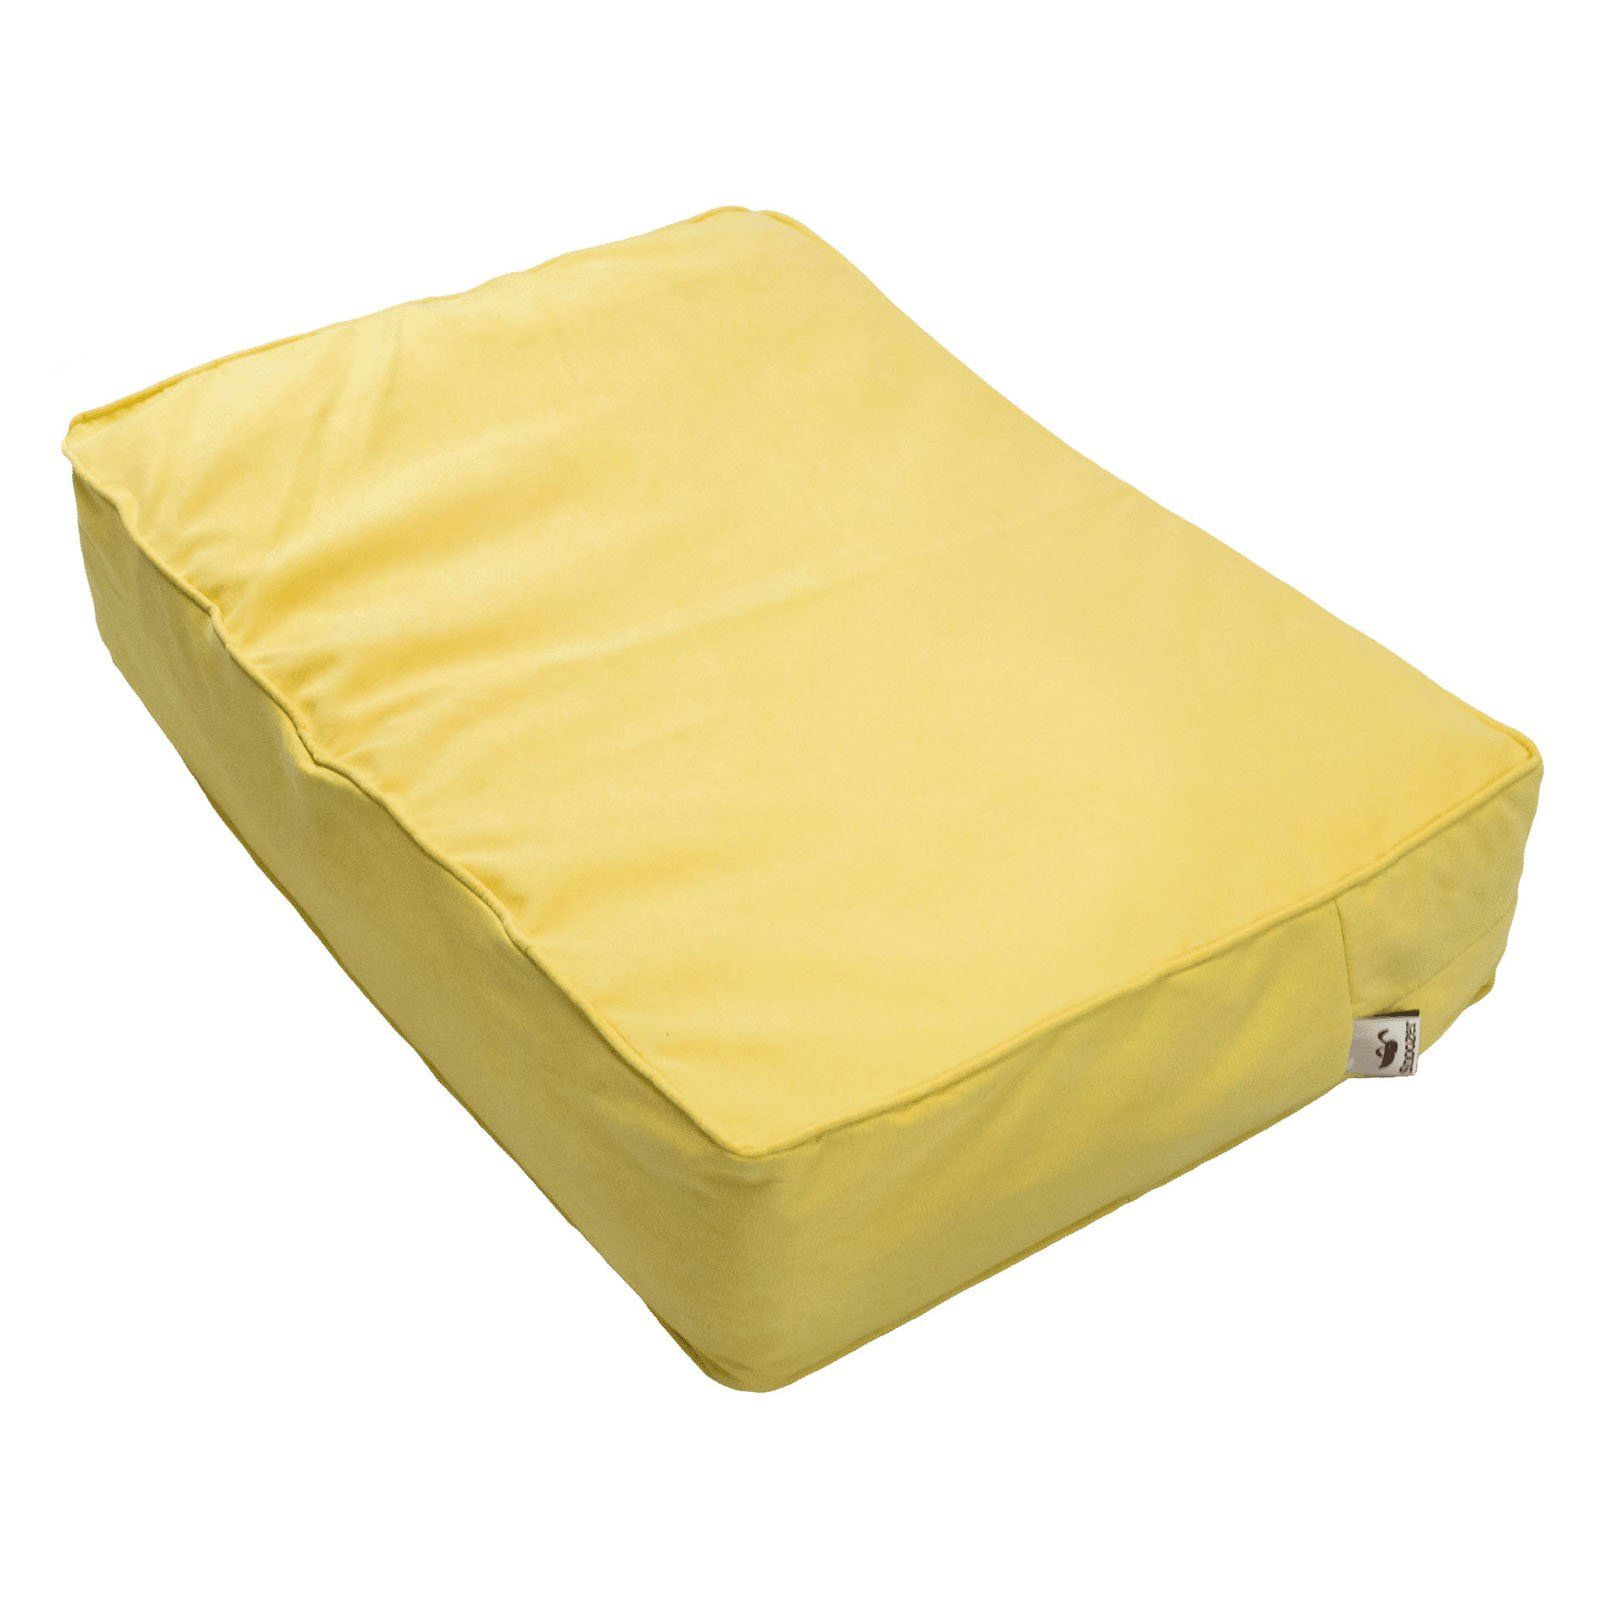 Snoozer Outlast Dog Bed Sleep System 5 In Thick Lemon Dog Bed